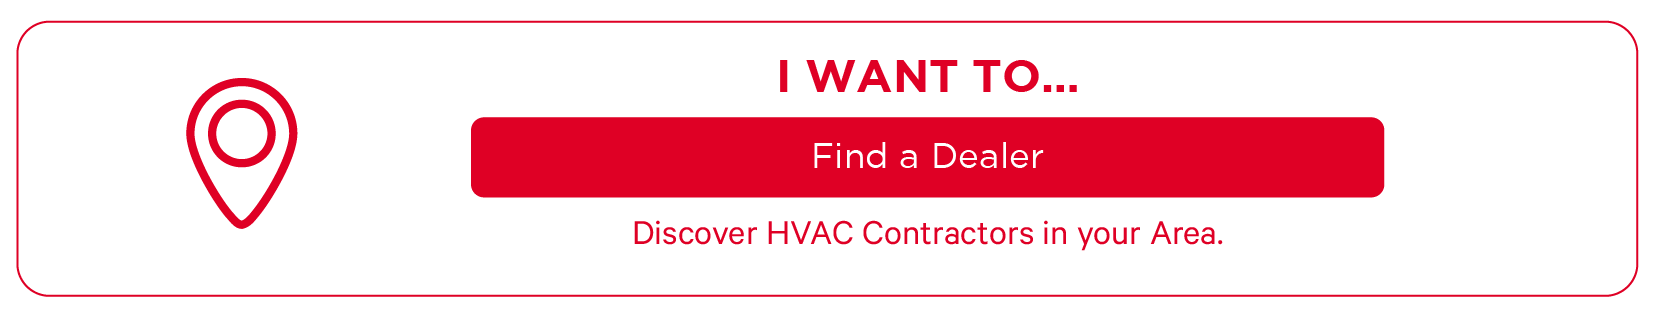 Goodman Find a HVAC Dealer